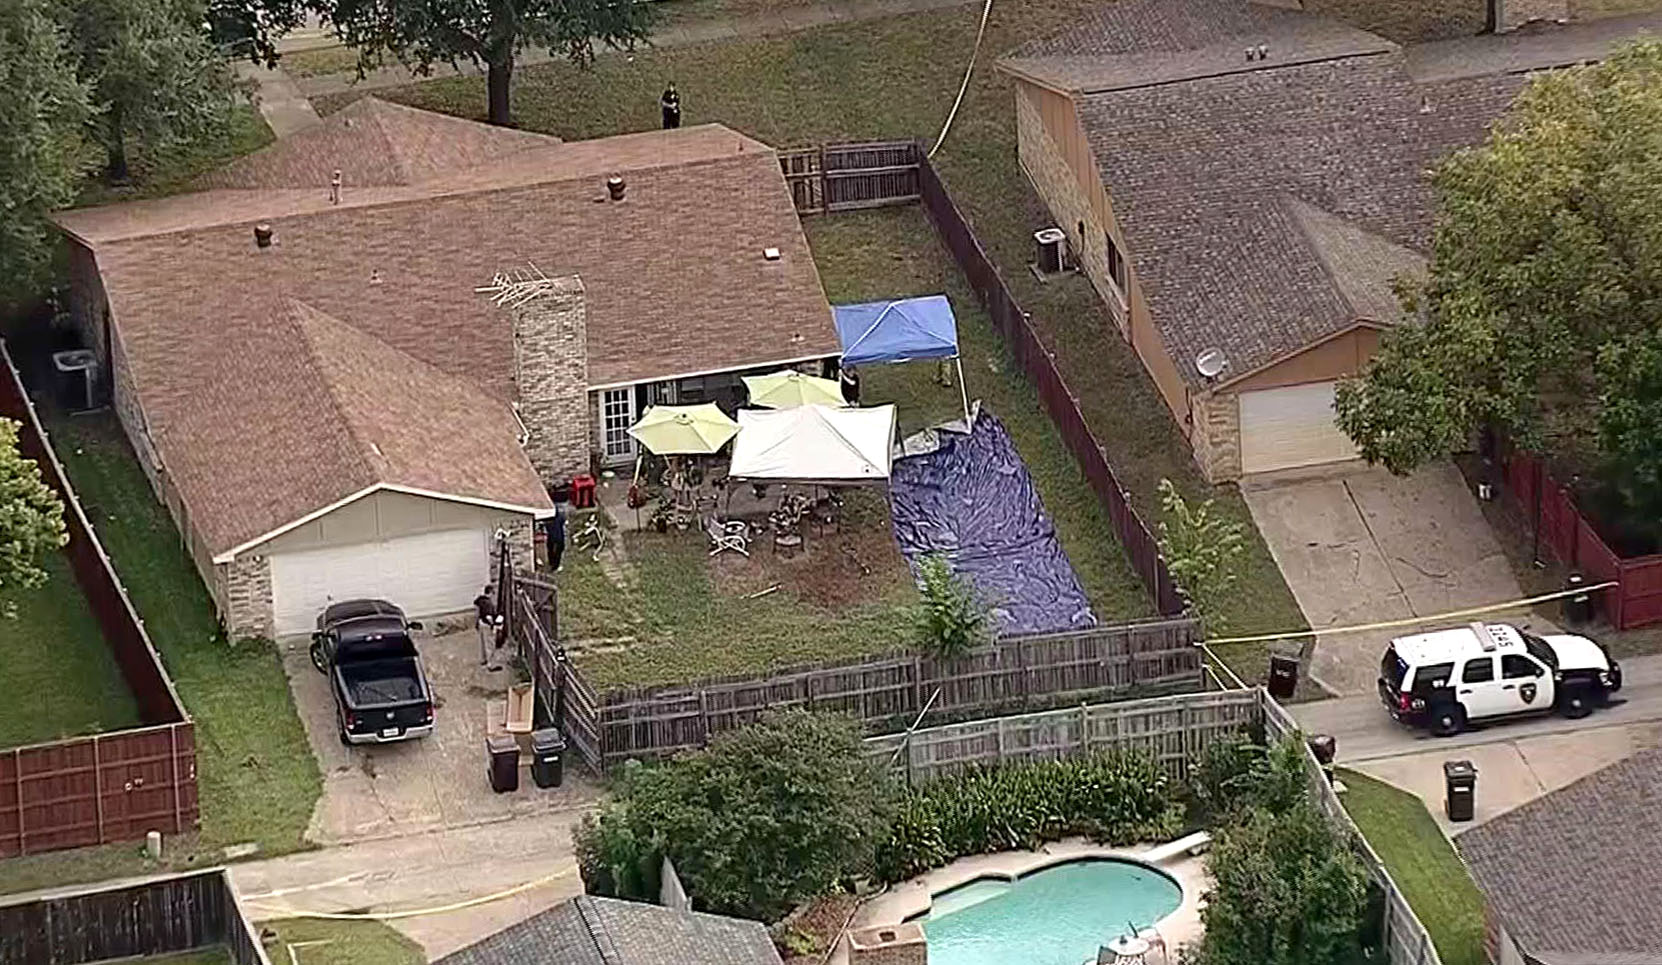 At least 8 dead after shooting in North Texas